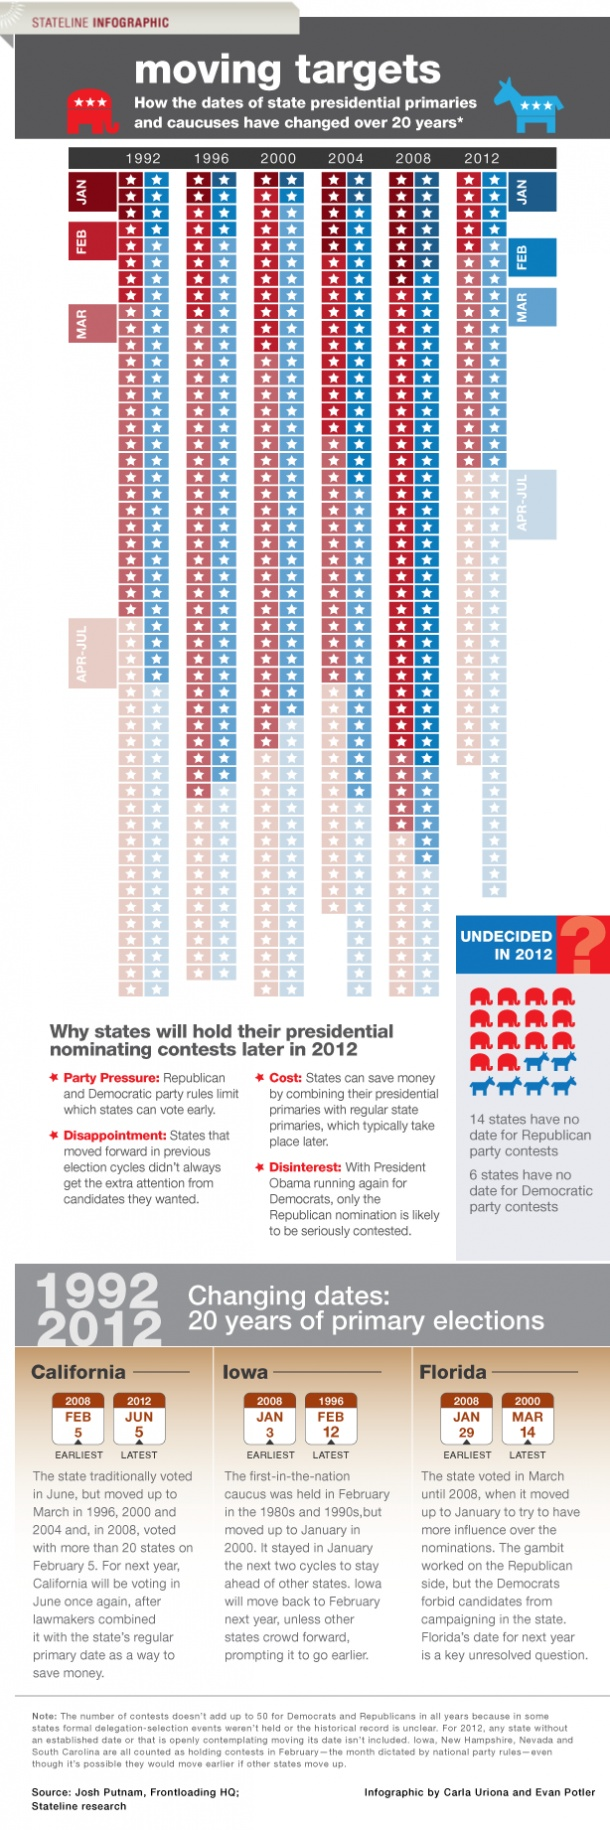 Moving Targets: How The Dates of State Presidential Primaries And Caucuses Have Changed Over 20 Years[INFOGRAPHIC]